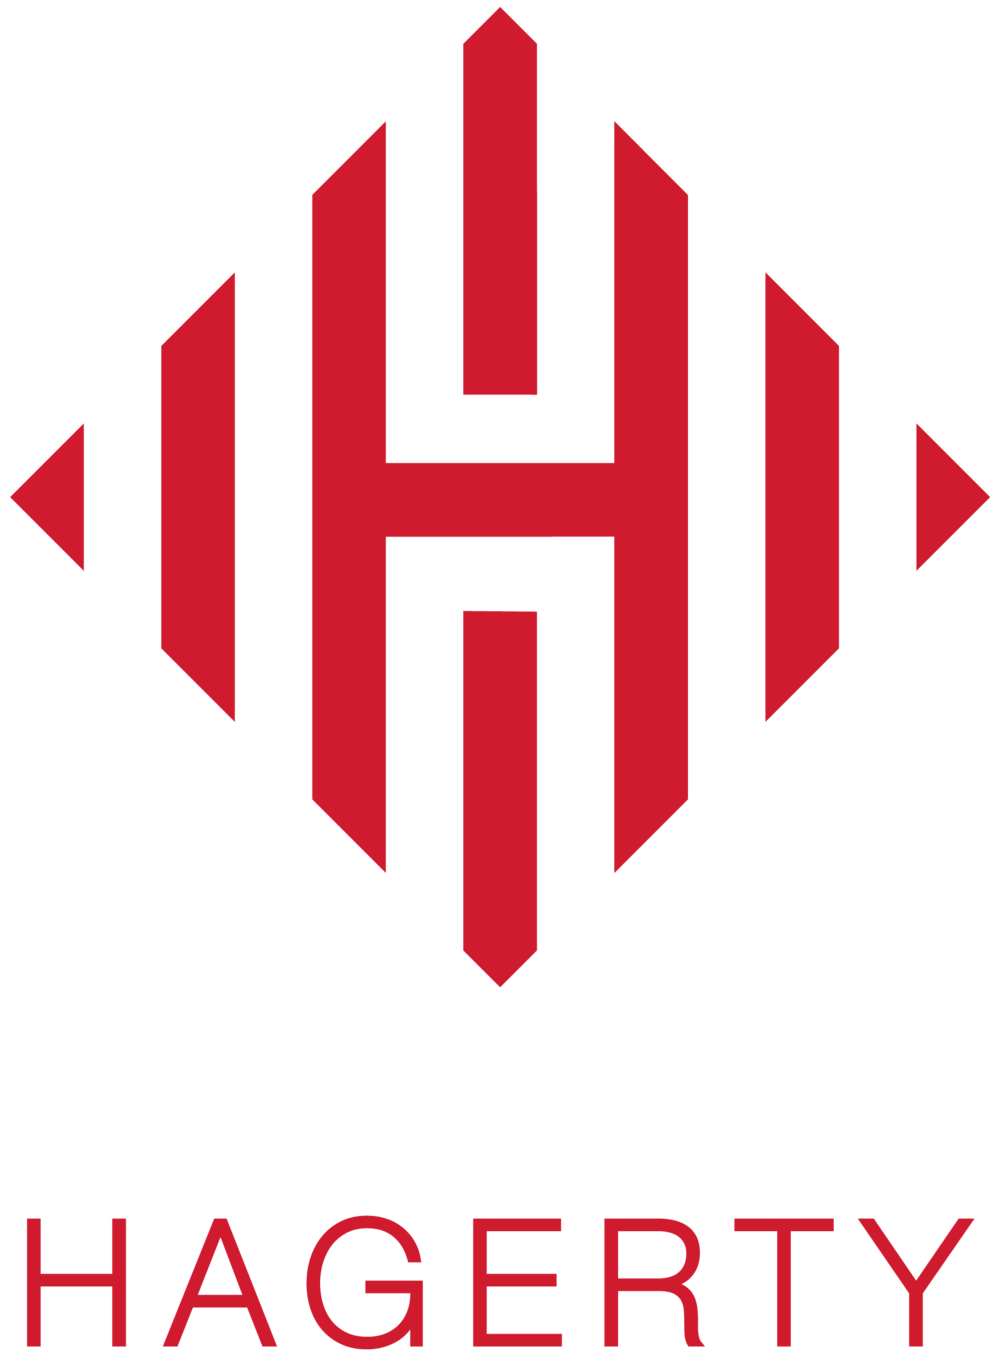 hagerty logo - square.png